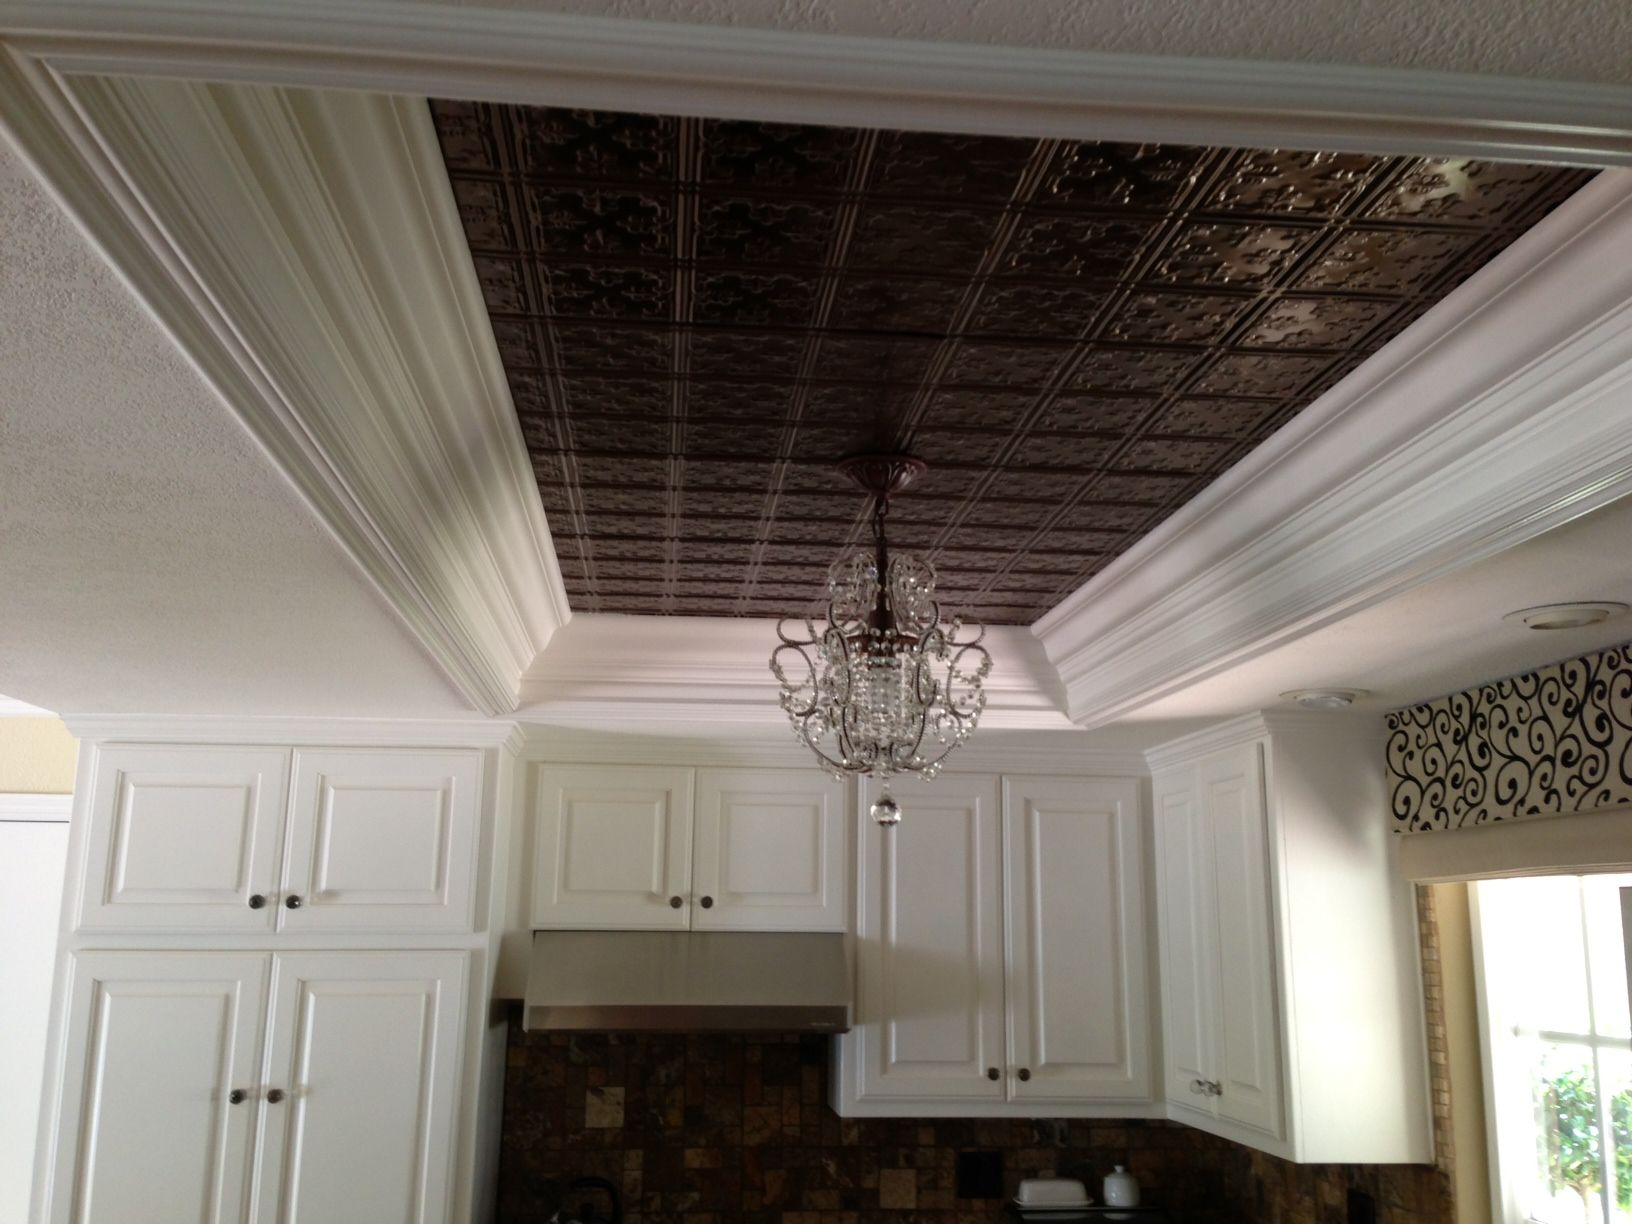 fluorescent kitchen lighting kitchen ceiling tiles and hanging light replace dated fluorescent lighting